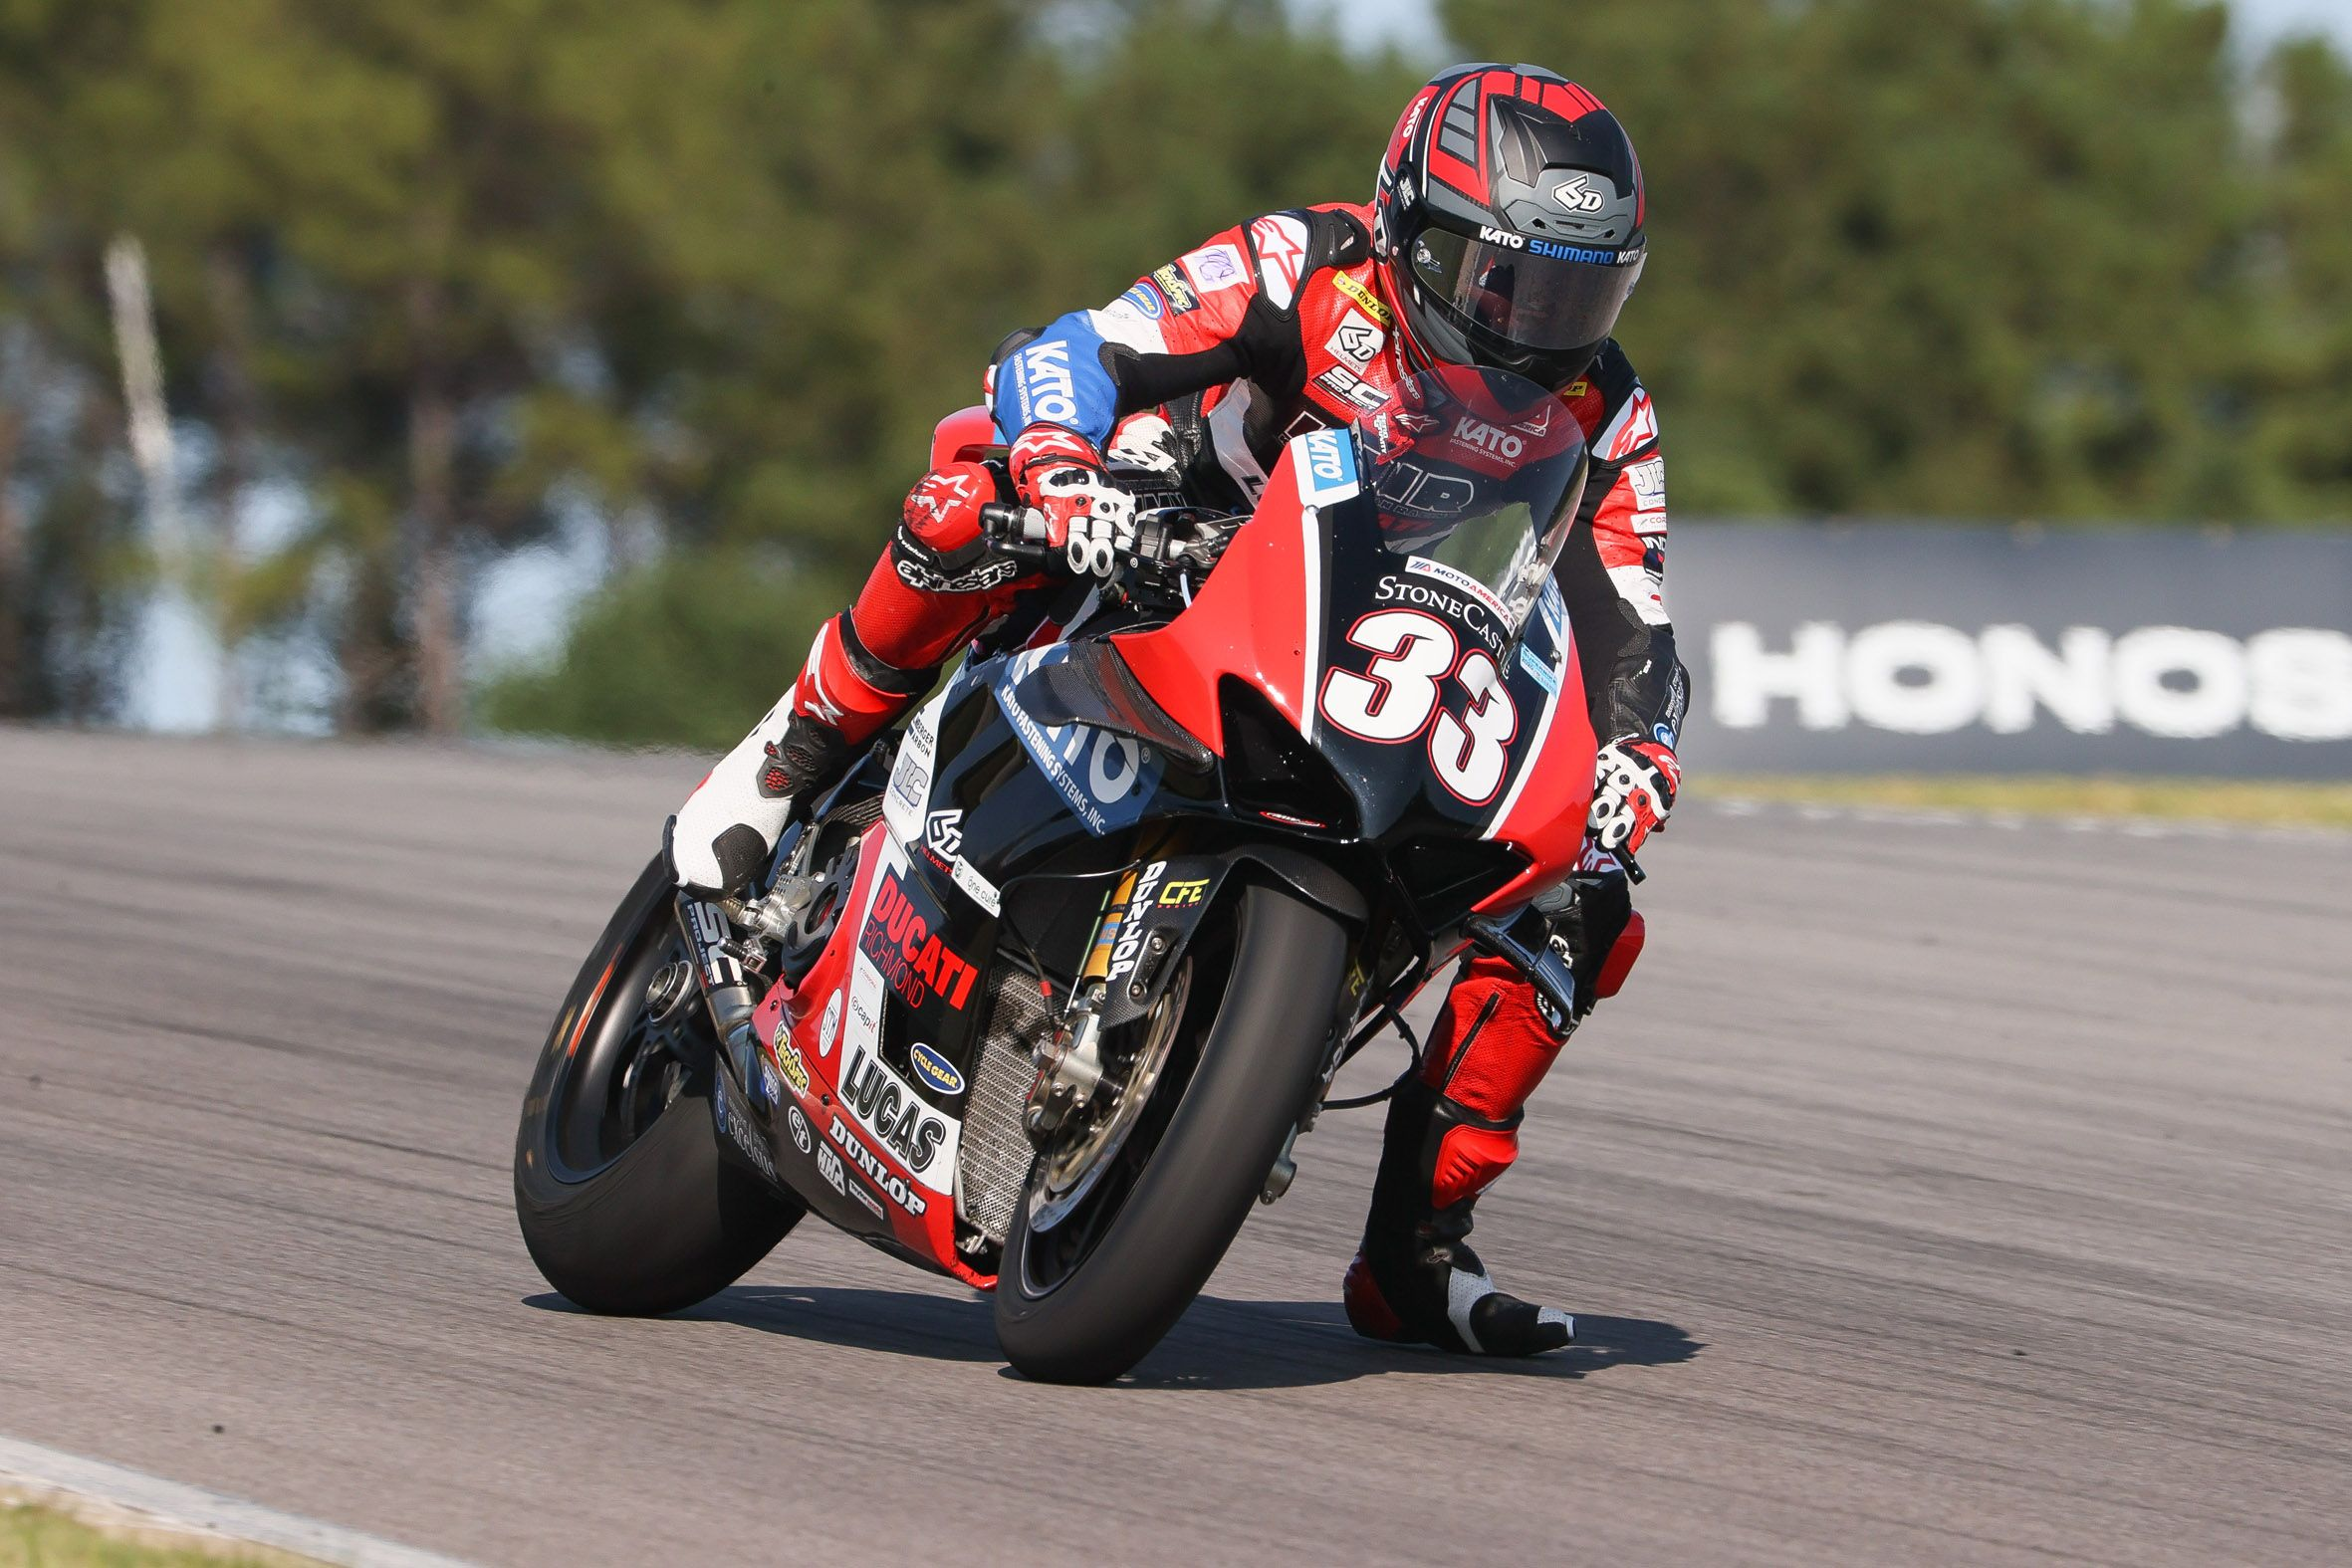 Gravel Causes Ducati To Hit Wall And Crash At Motoamerica Sunnyvale Calif September 20 2020 Kylewyman And Th Ducati Motorcycle News Ducati Panigale